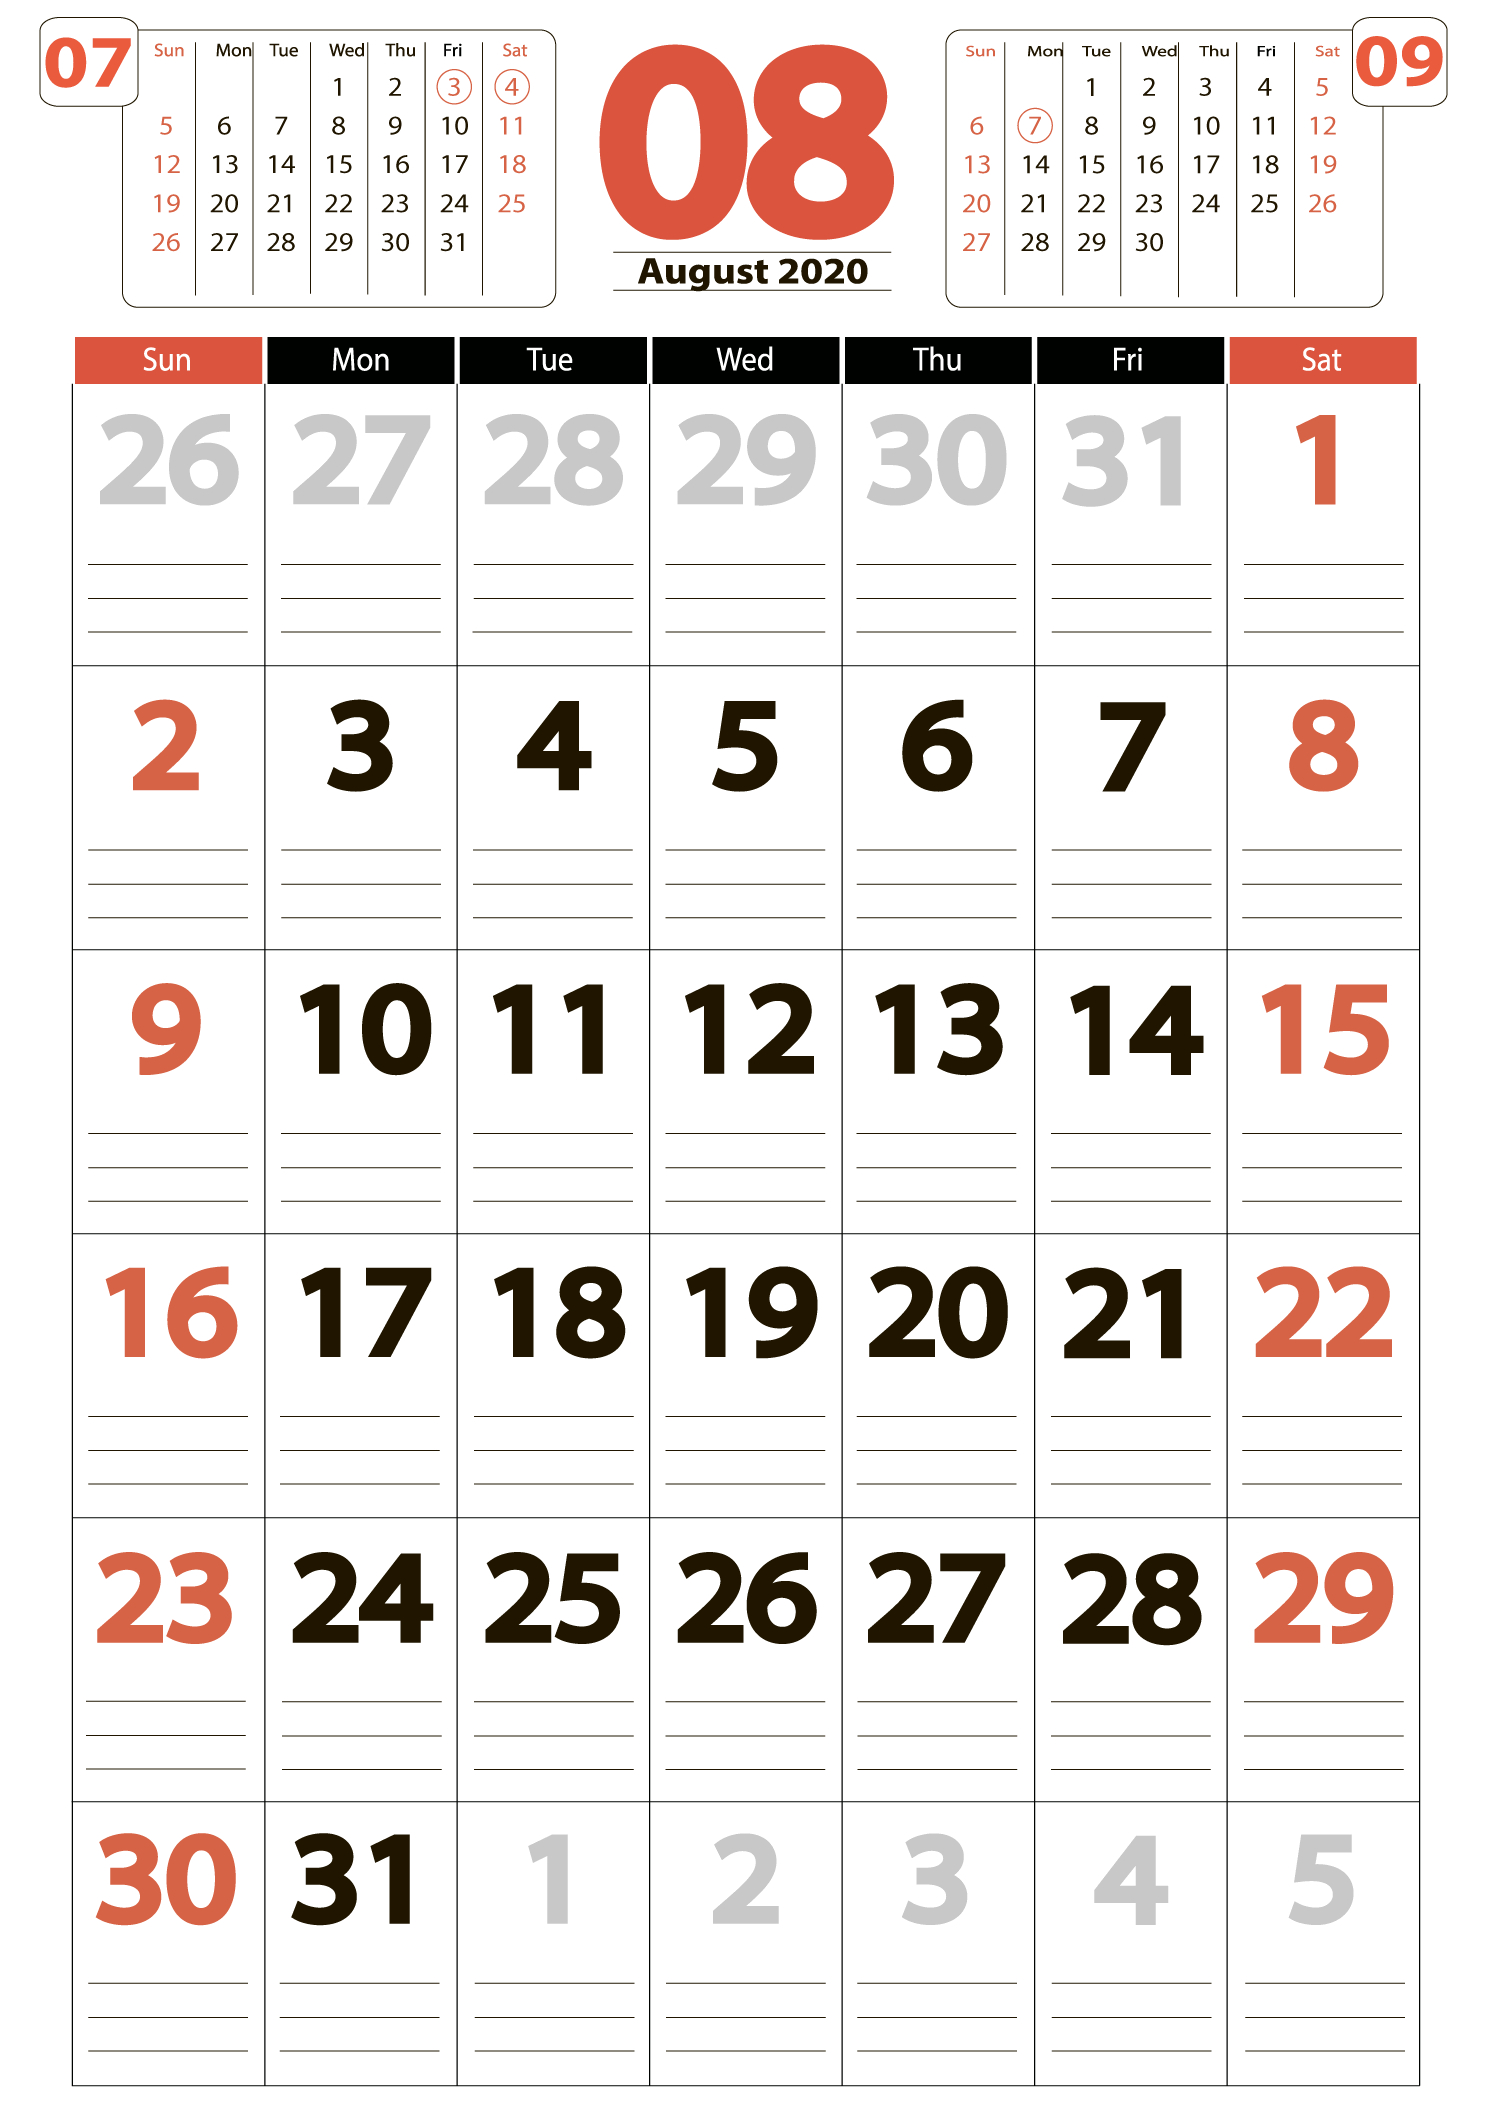 Download August 2020 Calendar - United States